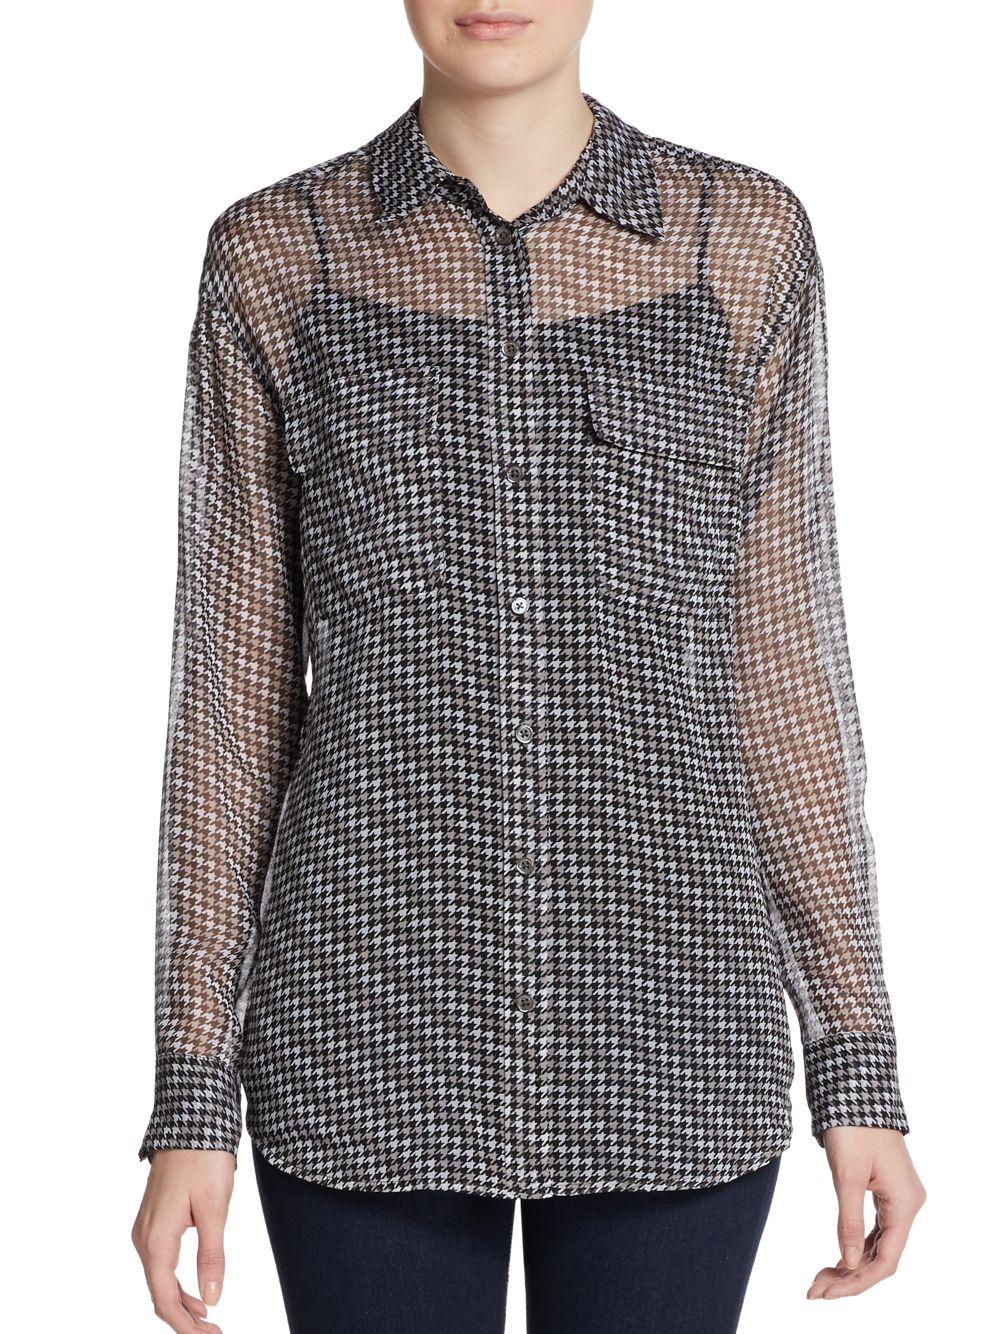 Equipment silk houndstooth print blouse in black black for Equipment black silk shirt